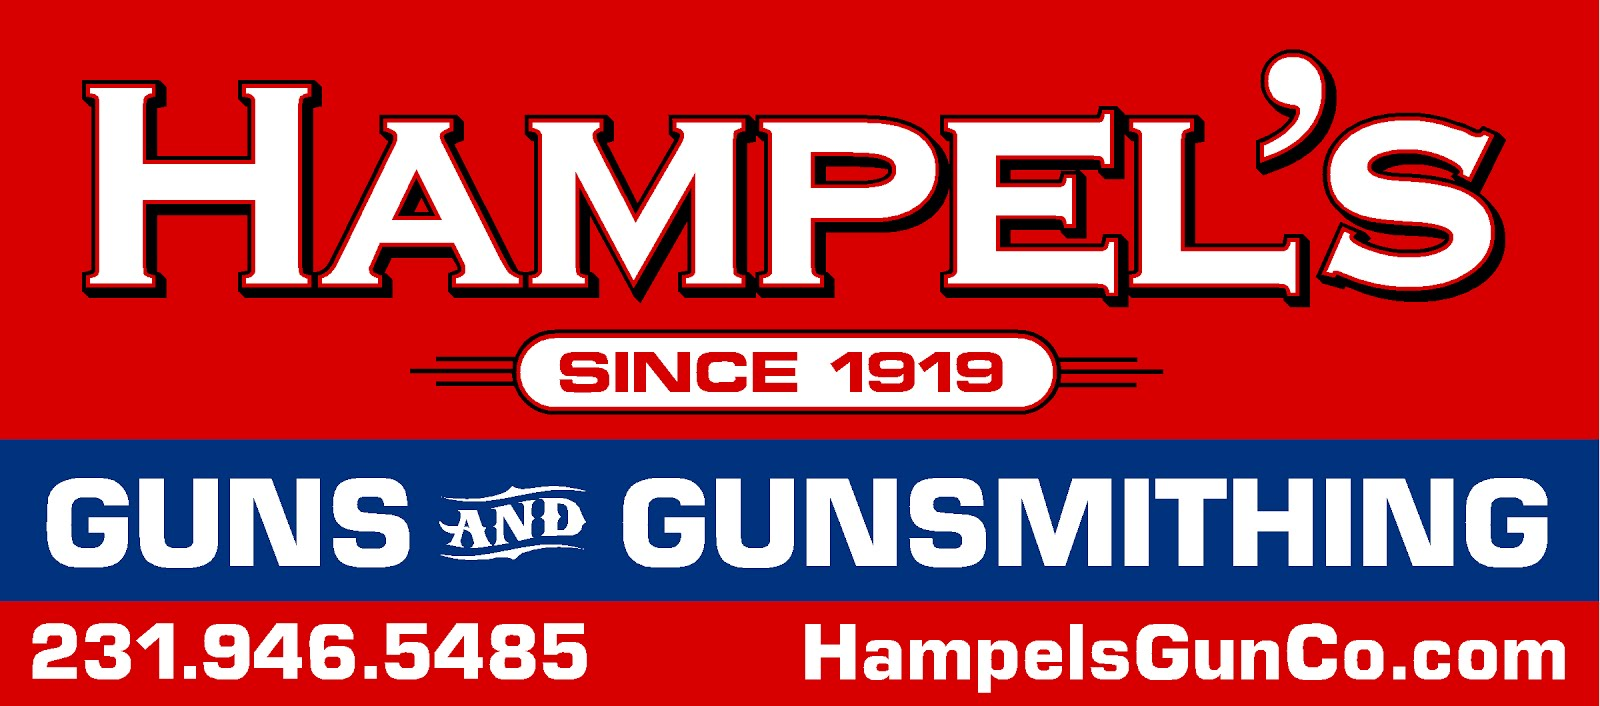 Hampel's Gun Co.